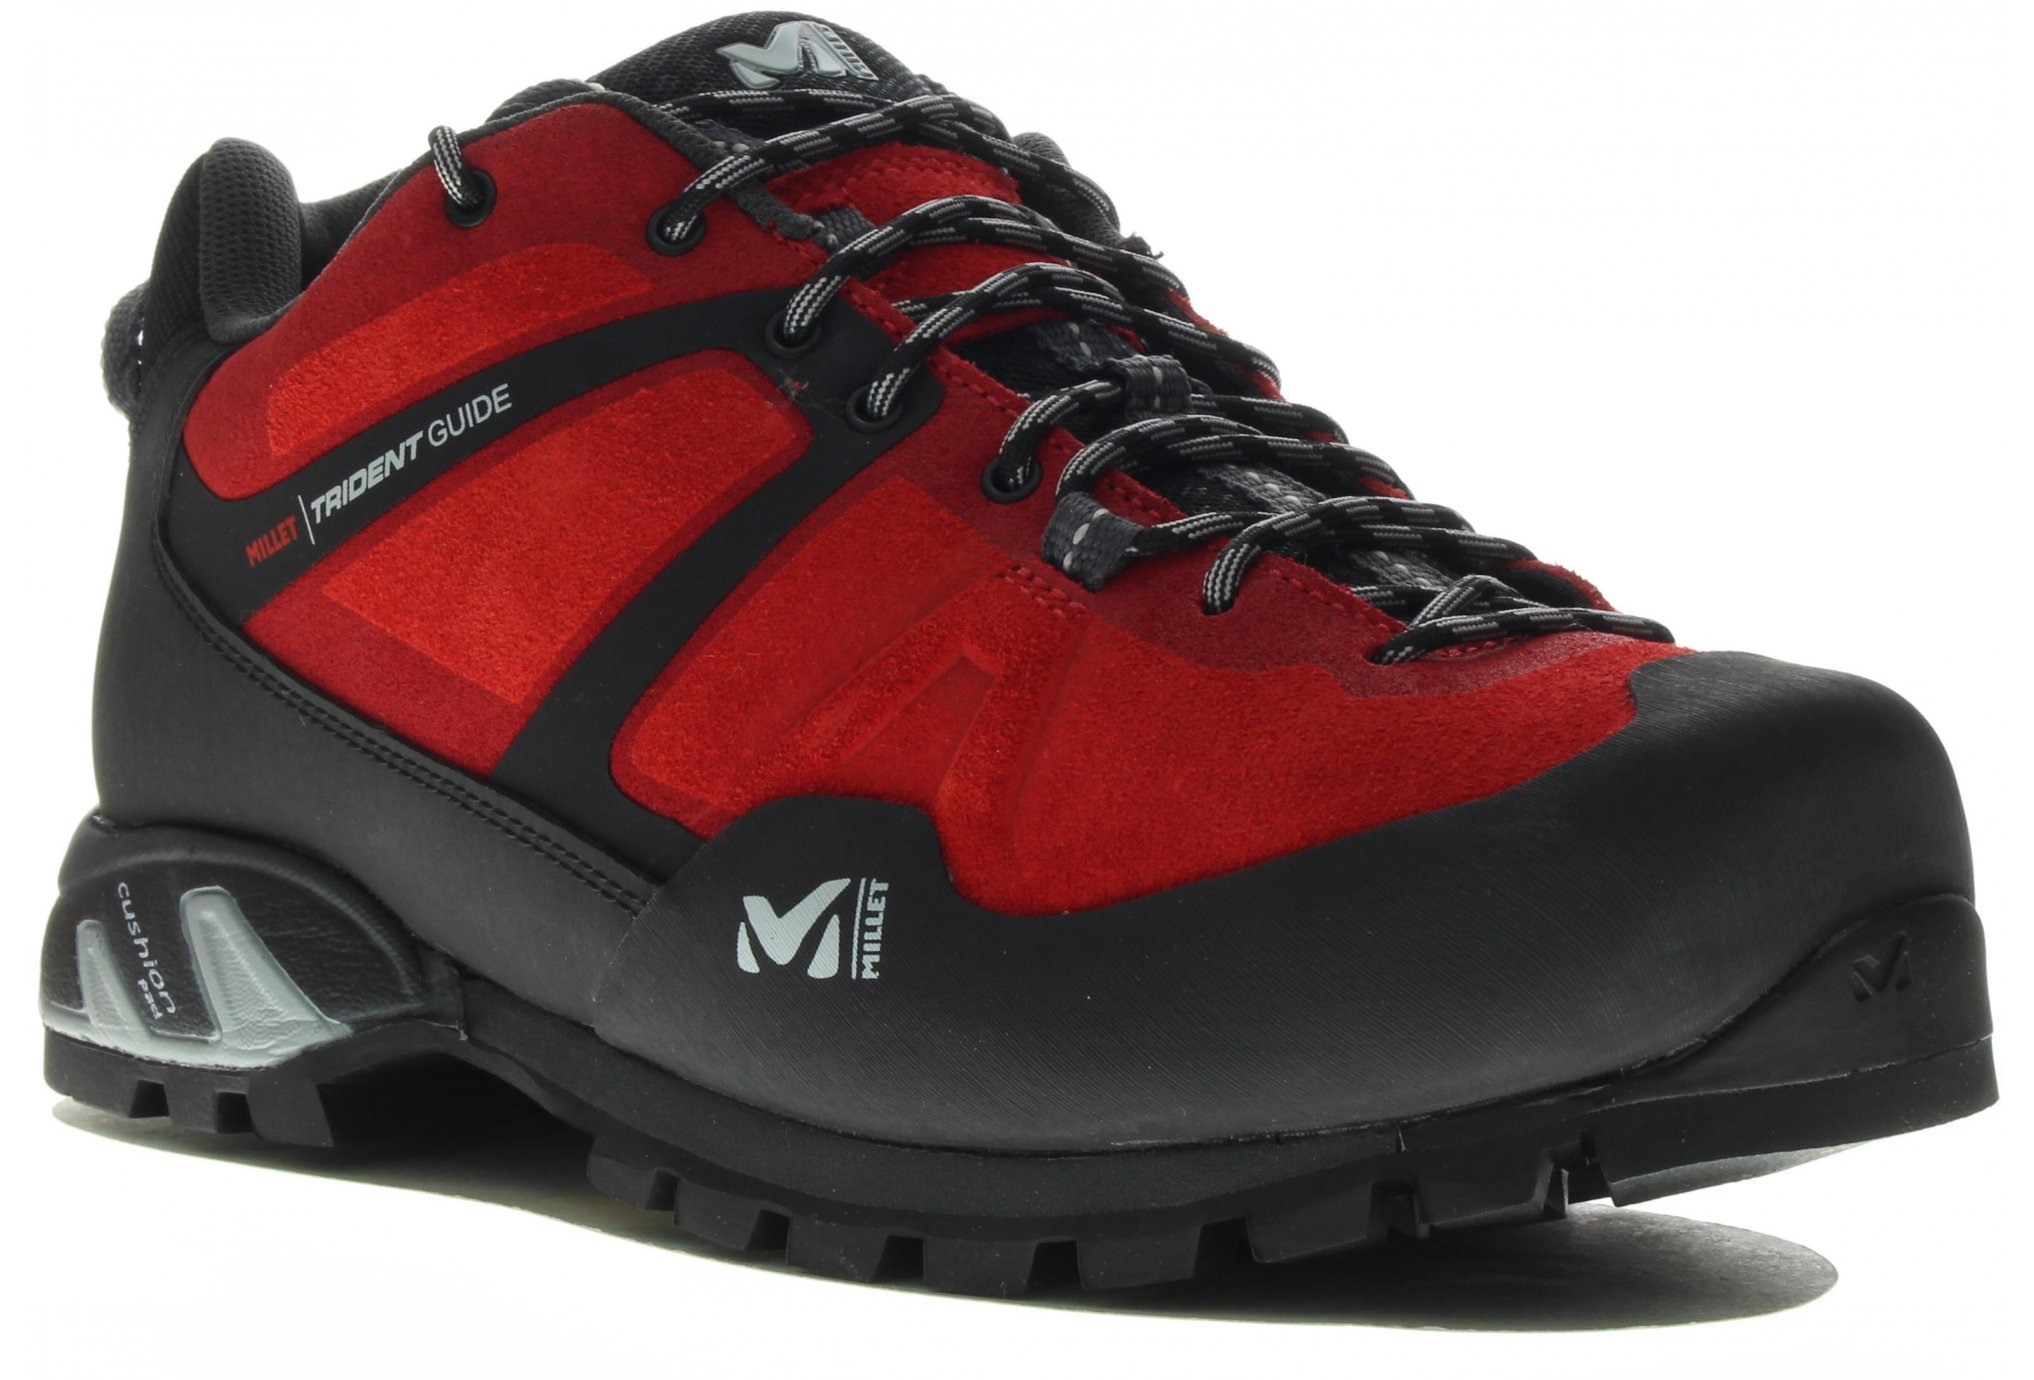 Millet Trident Guide M Chaussures homme